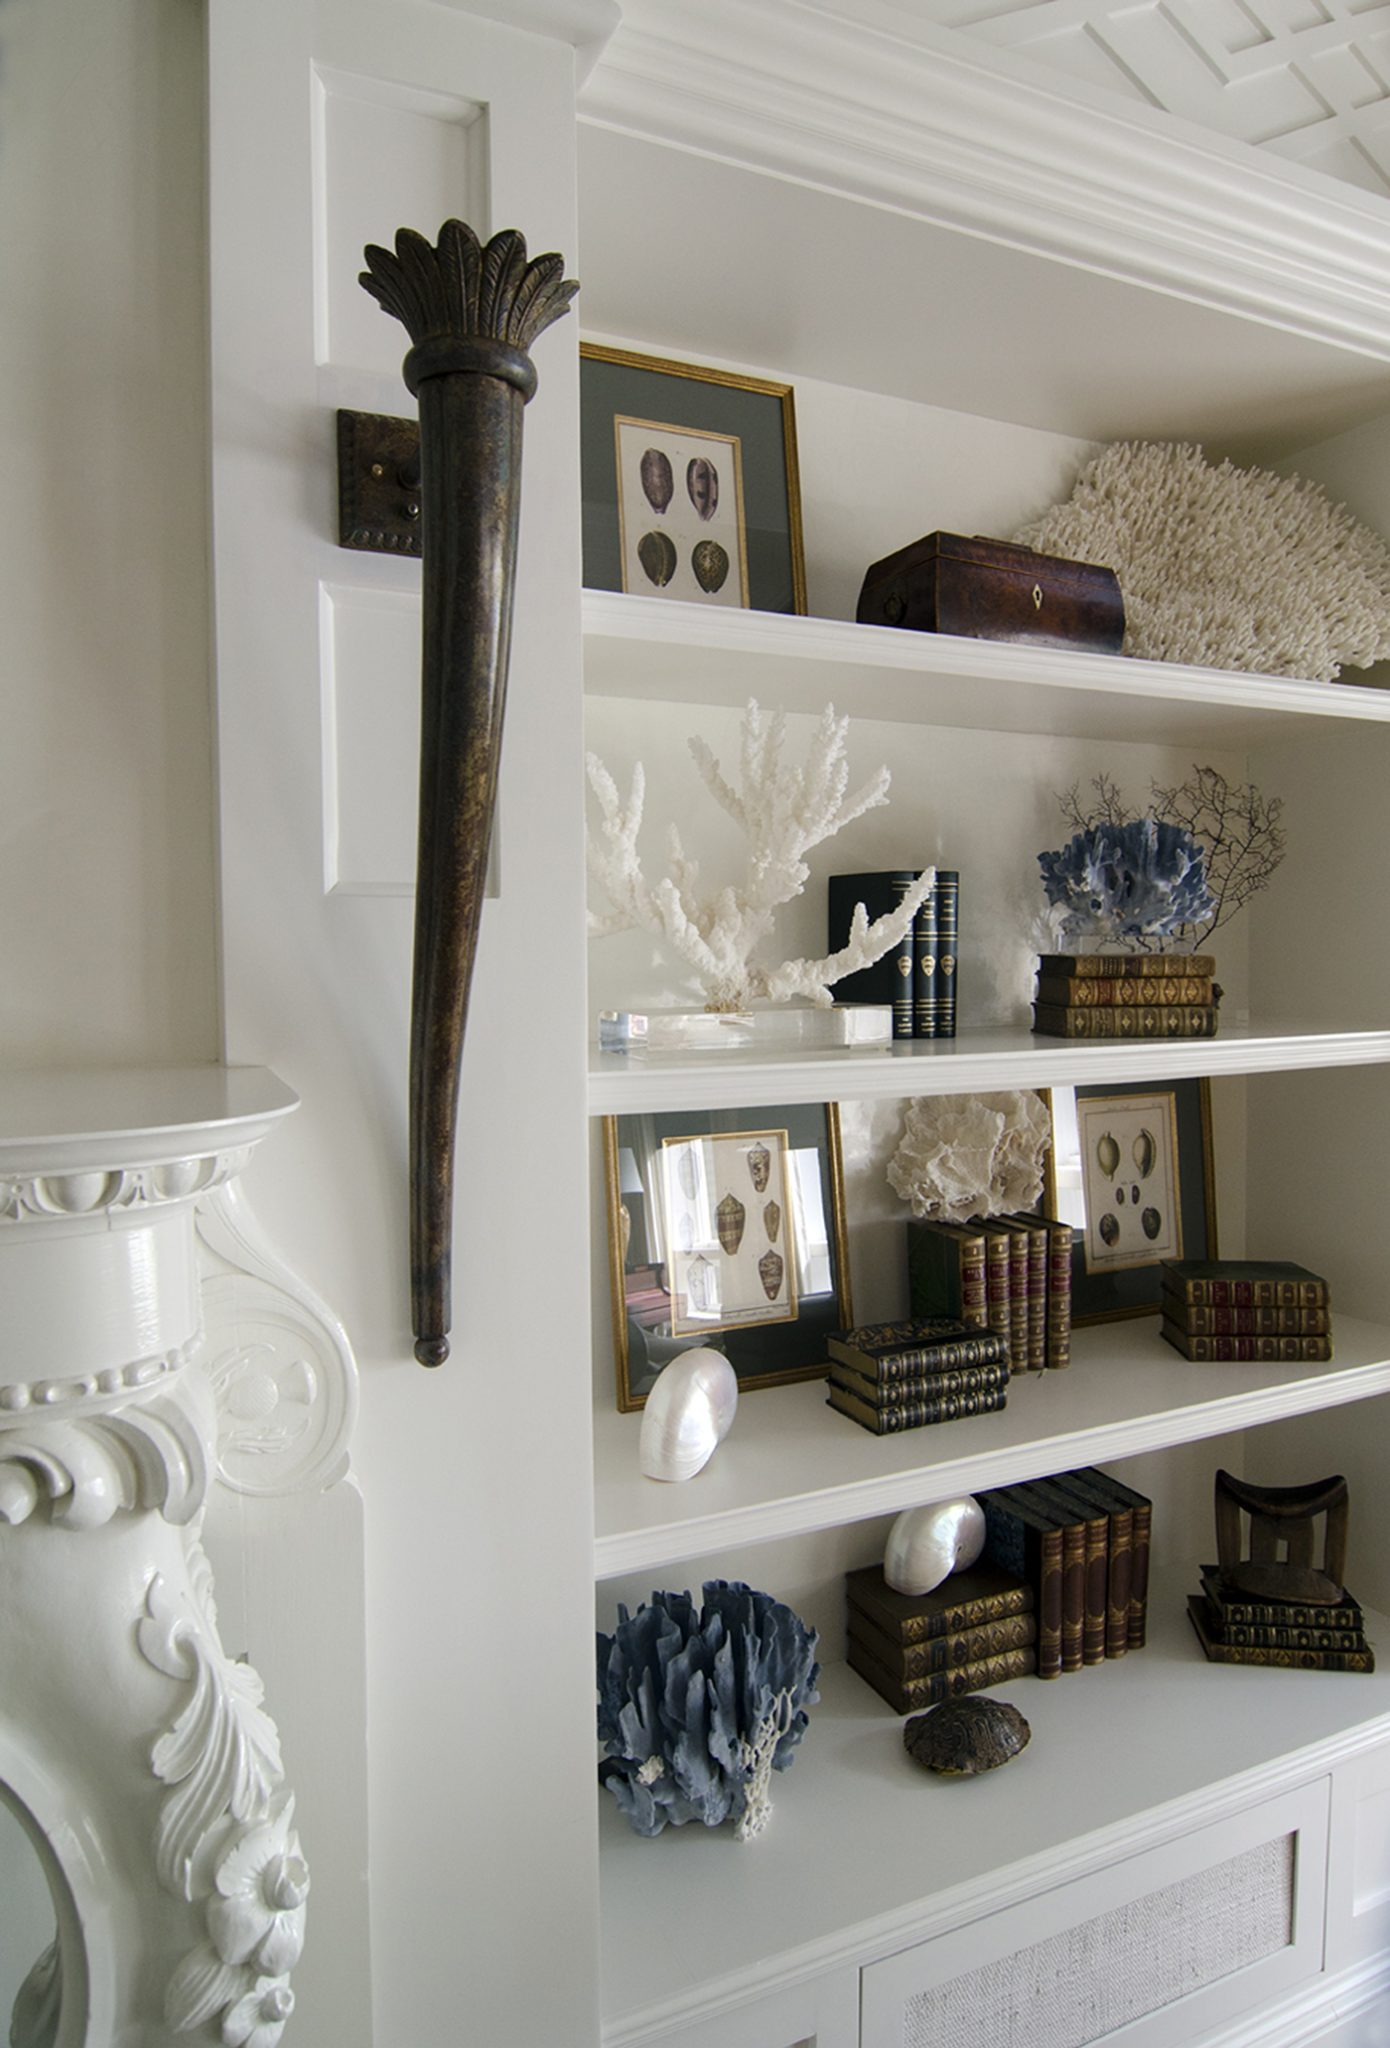 Shelving unit in master bedroom by Judith Liegeois Designs